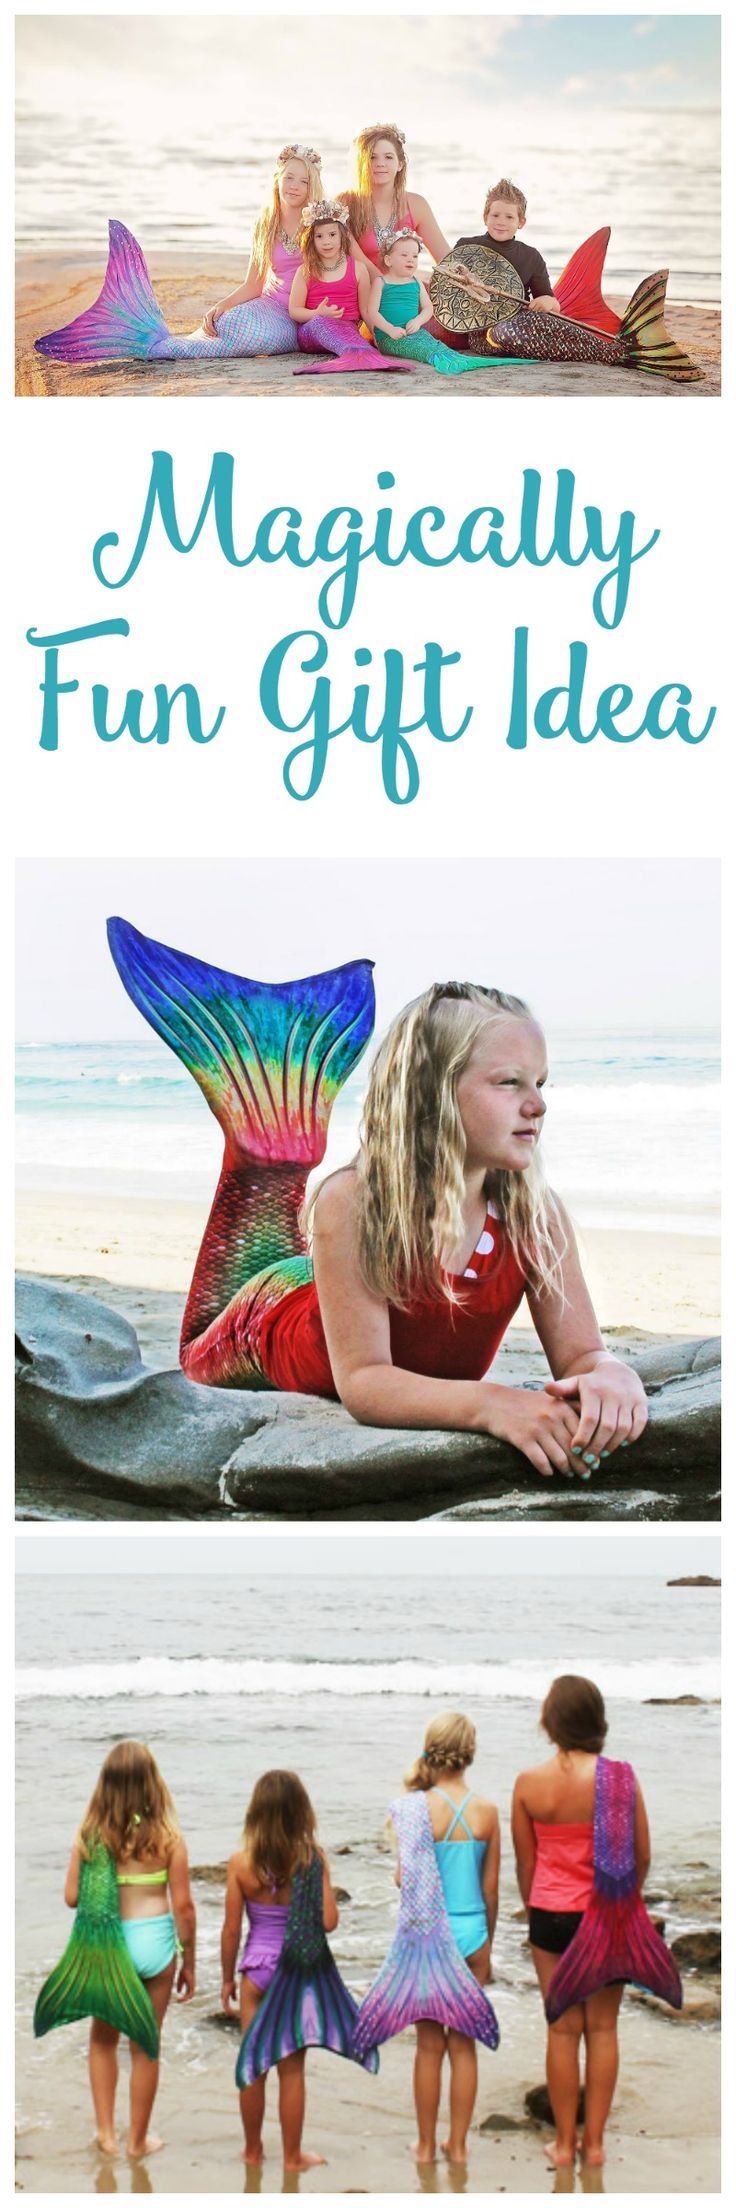 Magically Fun Gift Idea – Sun Tail Mermaid Tails for Swimming #Giveaway